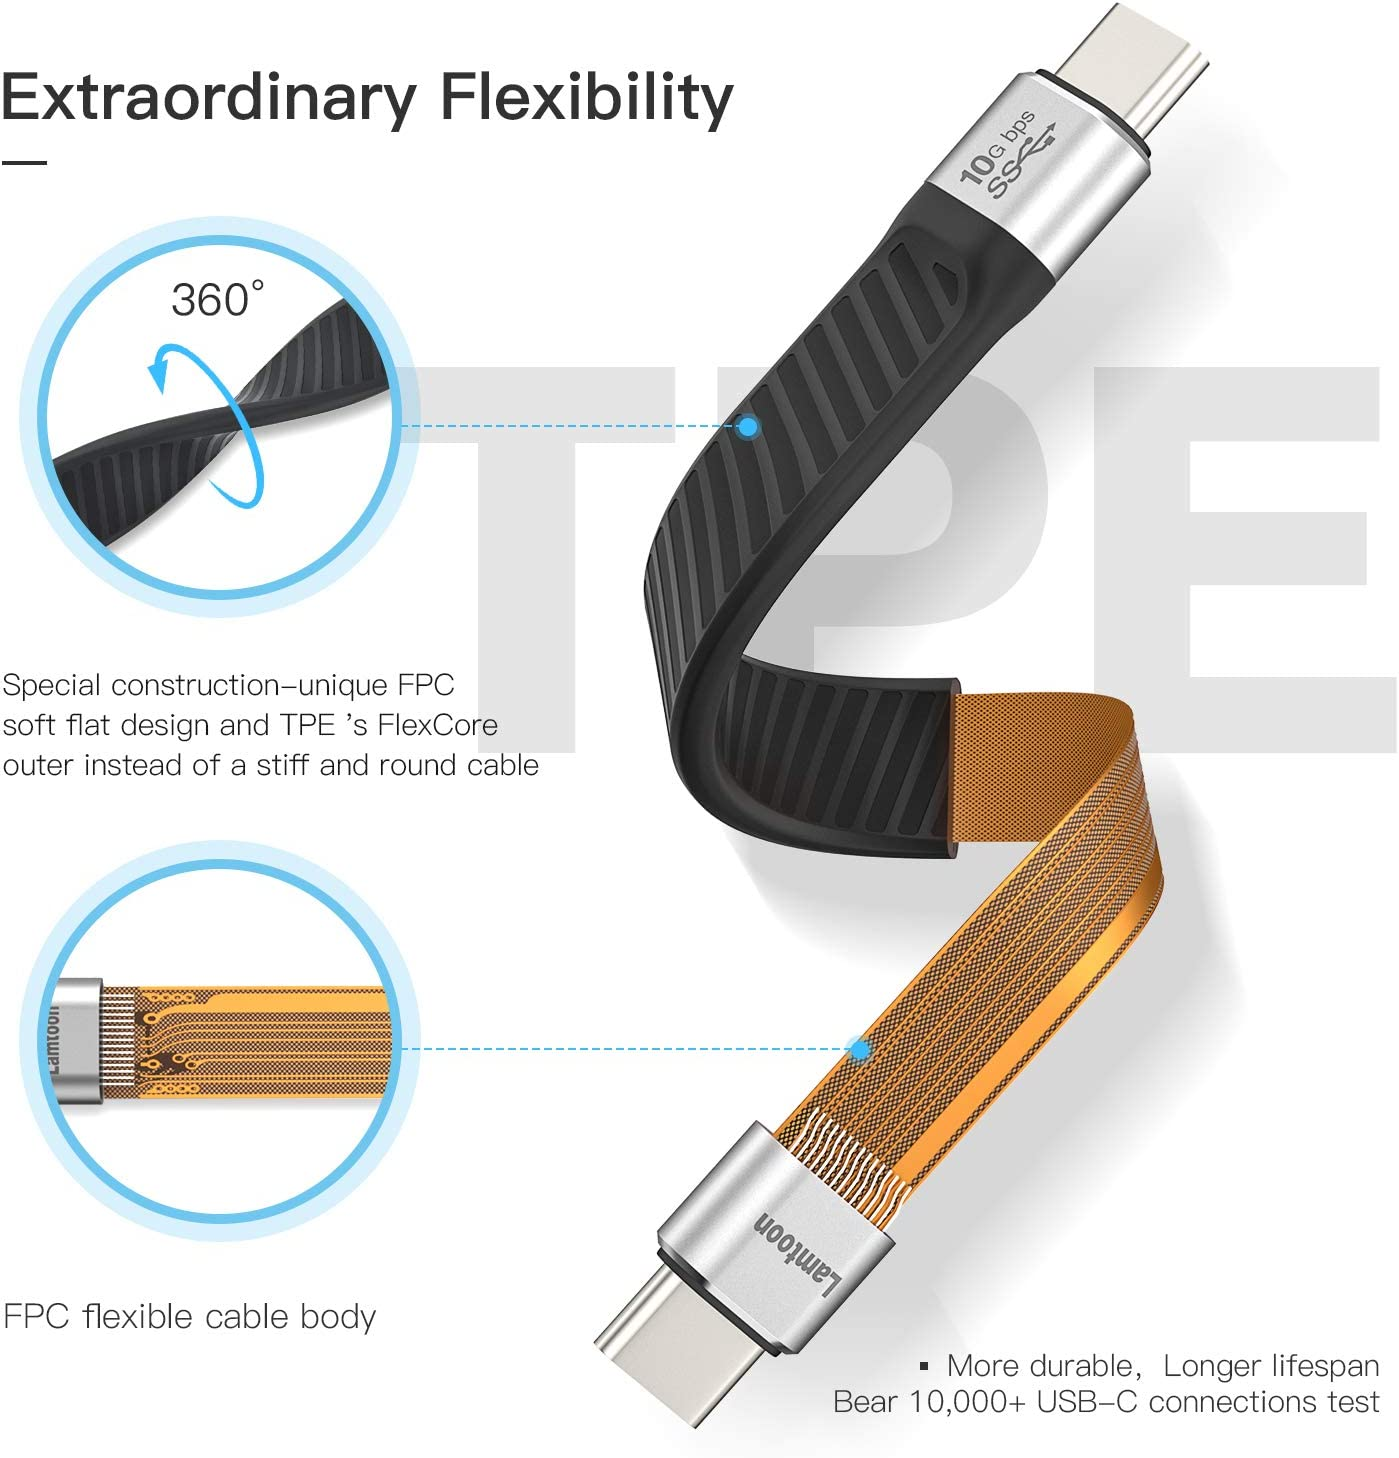 Short USB C 3.1 Cable,Lamtoon USB 3.1 Gen 2 100W USB C to C Fast Charging Cable FPC Design with 10Gbps Data Transfer,4K@60Hz Video and Audio Output,Thunderbolt 3 for MacBook Pro Air2020,Samsung S20